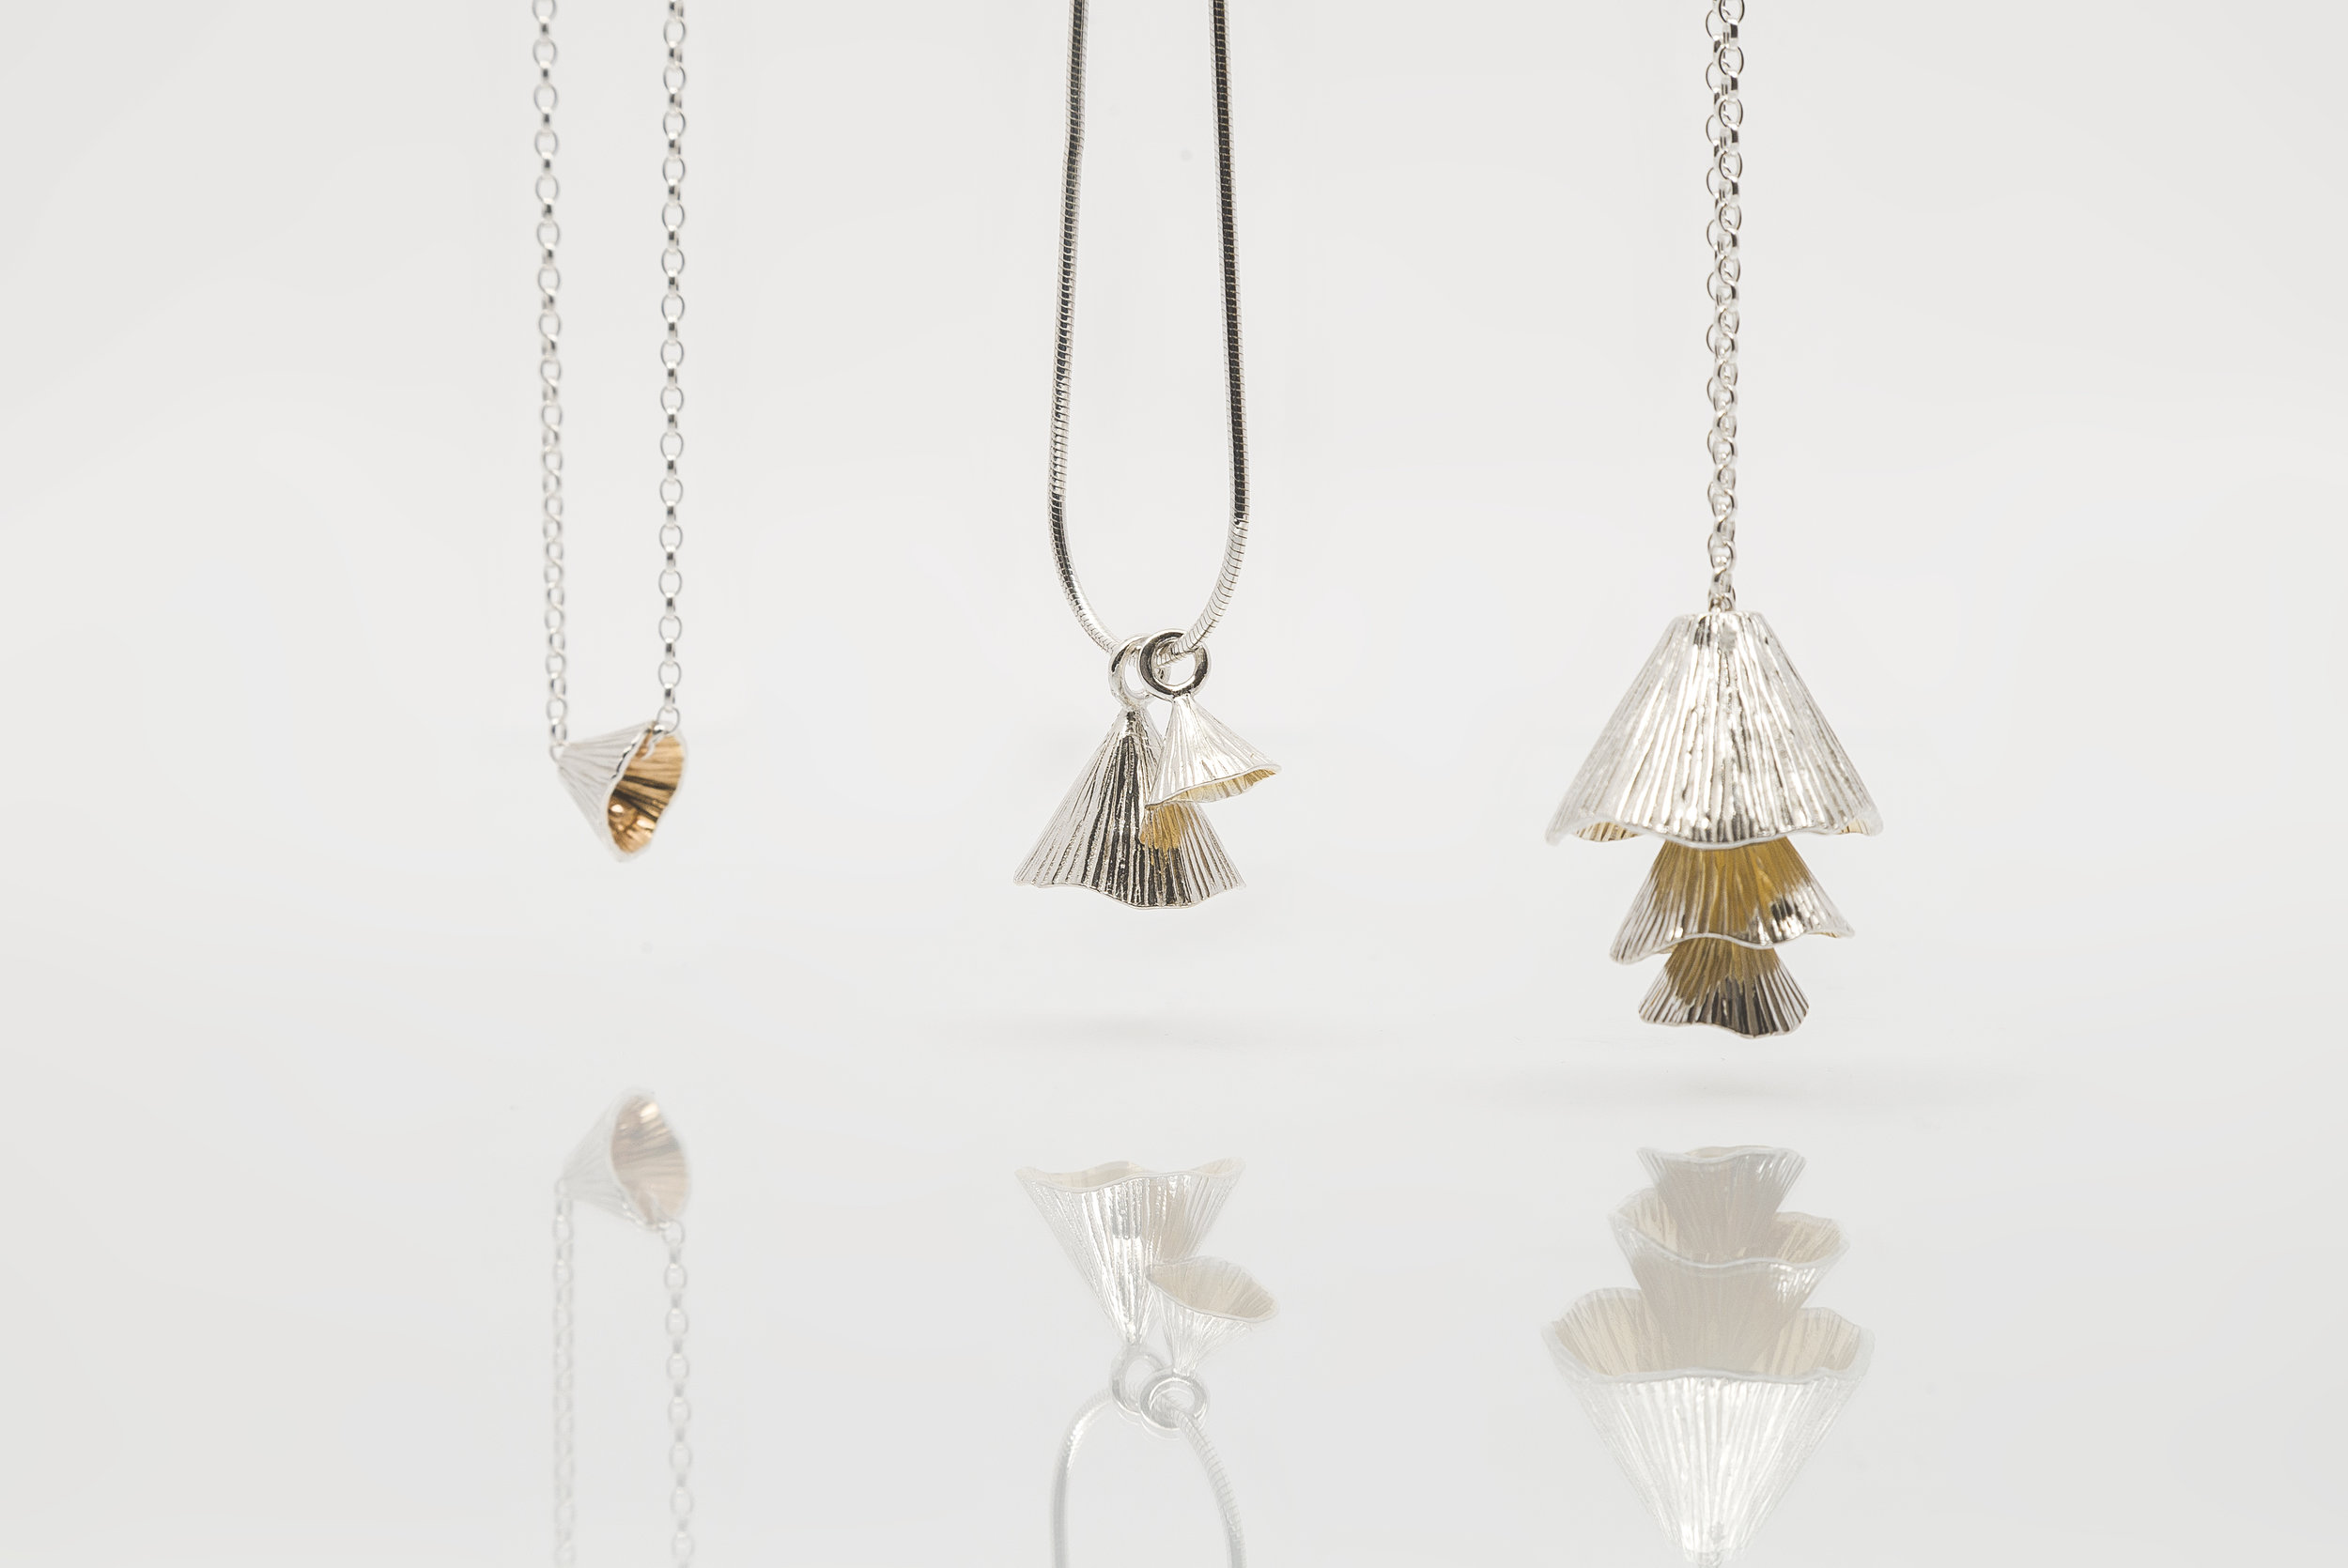 Shell Cone Sterling Silver pendants with 22 carat gold plating SCB3G €65 SCCD3K €135 SC33 €230.jpg